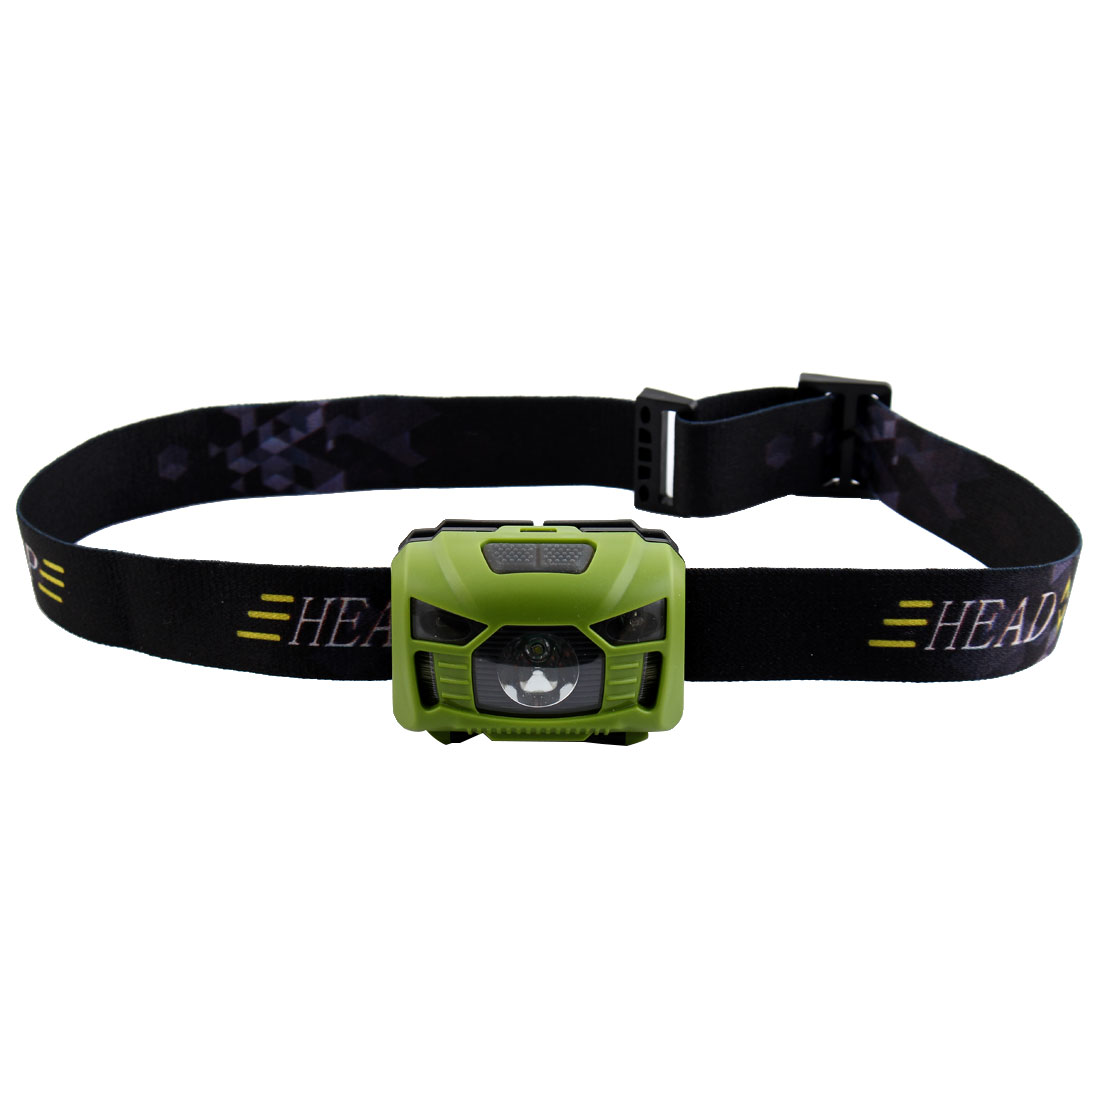 Outdoor Travel Hiking Camping LED Head Lamp Cycling Biking Headlamp Portable Headlight Green